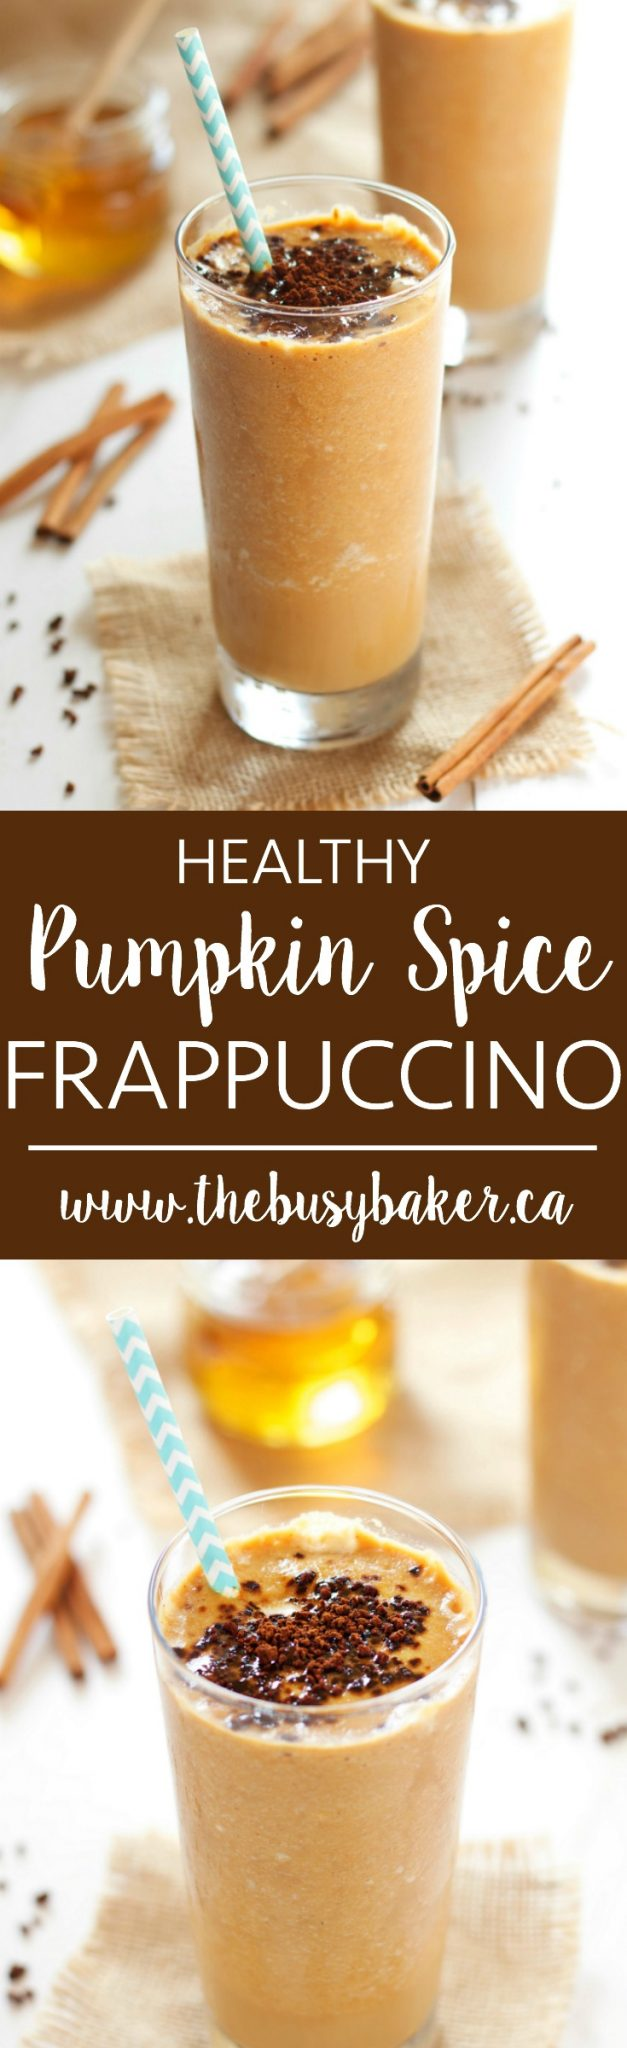 This Healthy Pumpkin Spice Frappuccino is everybody's favourite fall coffee drink recipe with a healthy twist, made from simple, wholesome ingredients! Recipe from thebusybaker.ca! via @busybakerblog